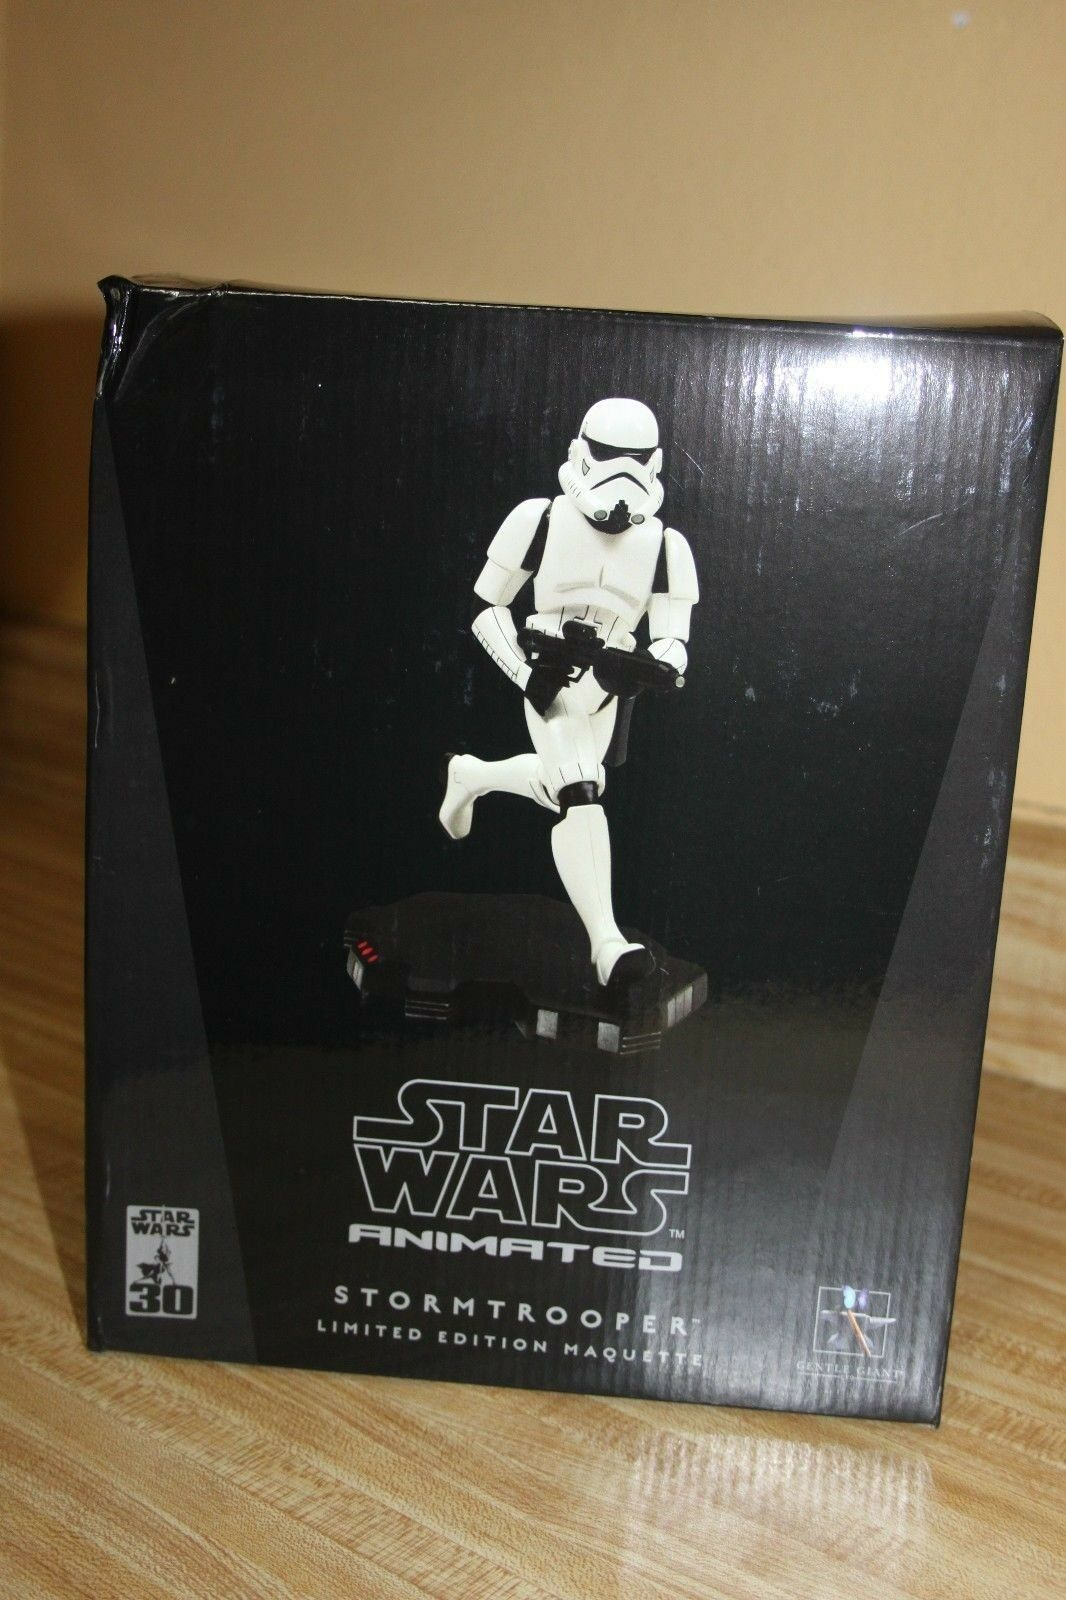 Star Wars Animated Maquette Limited Gentle Giant 30 Stormtrooper NIB